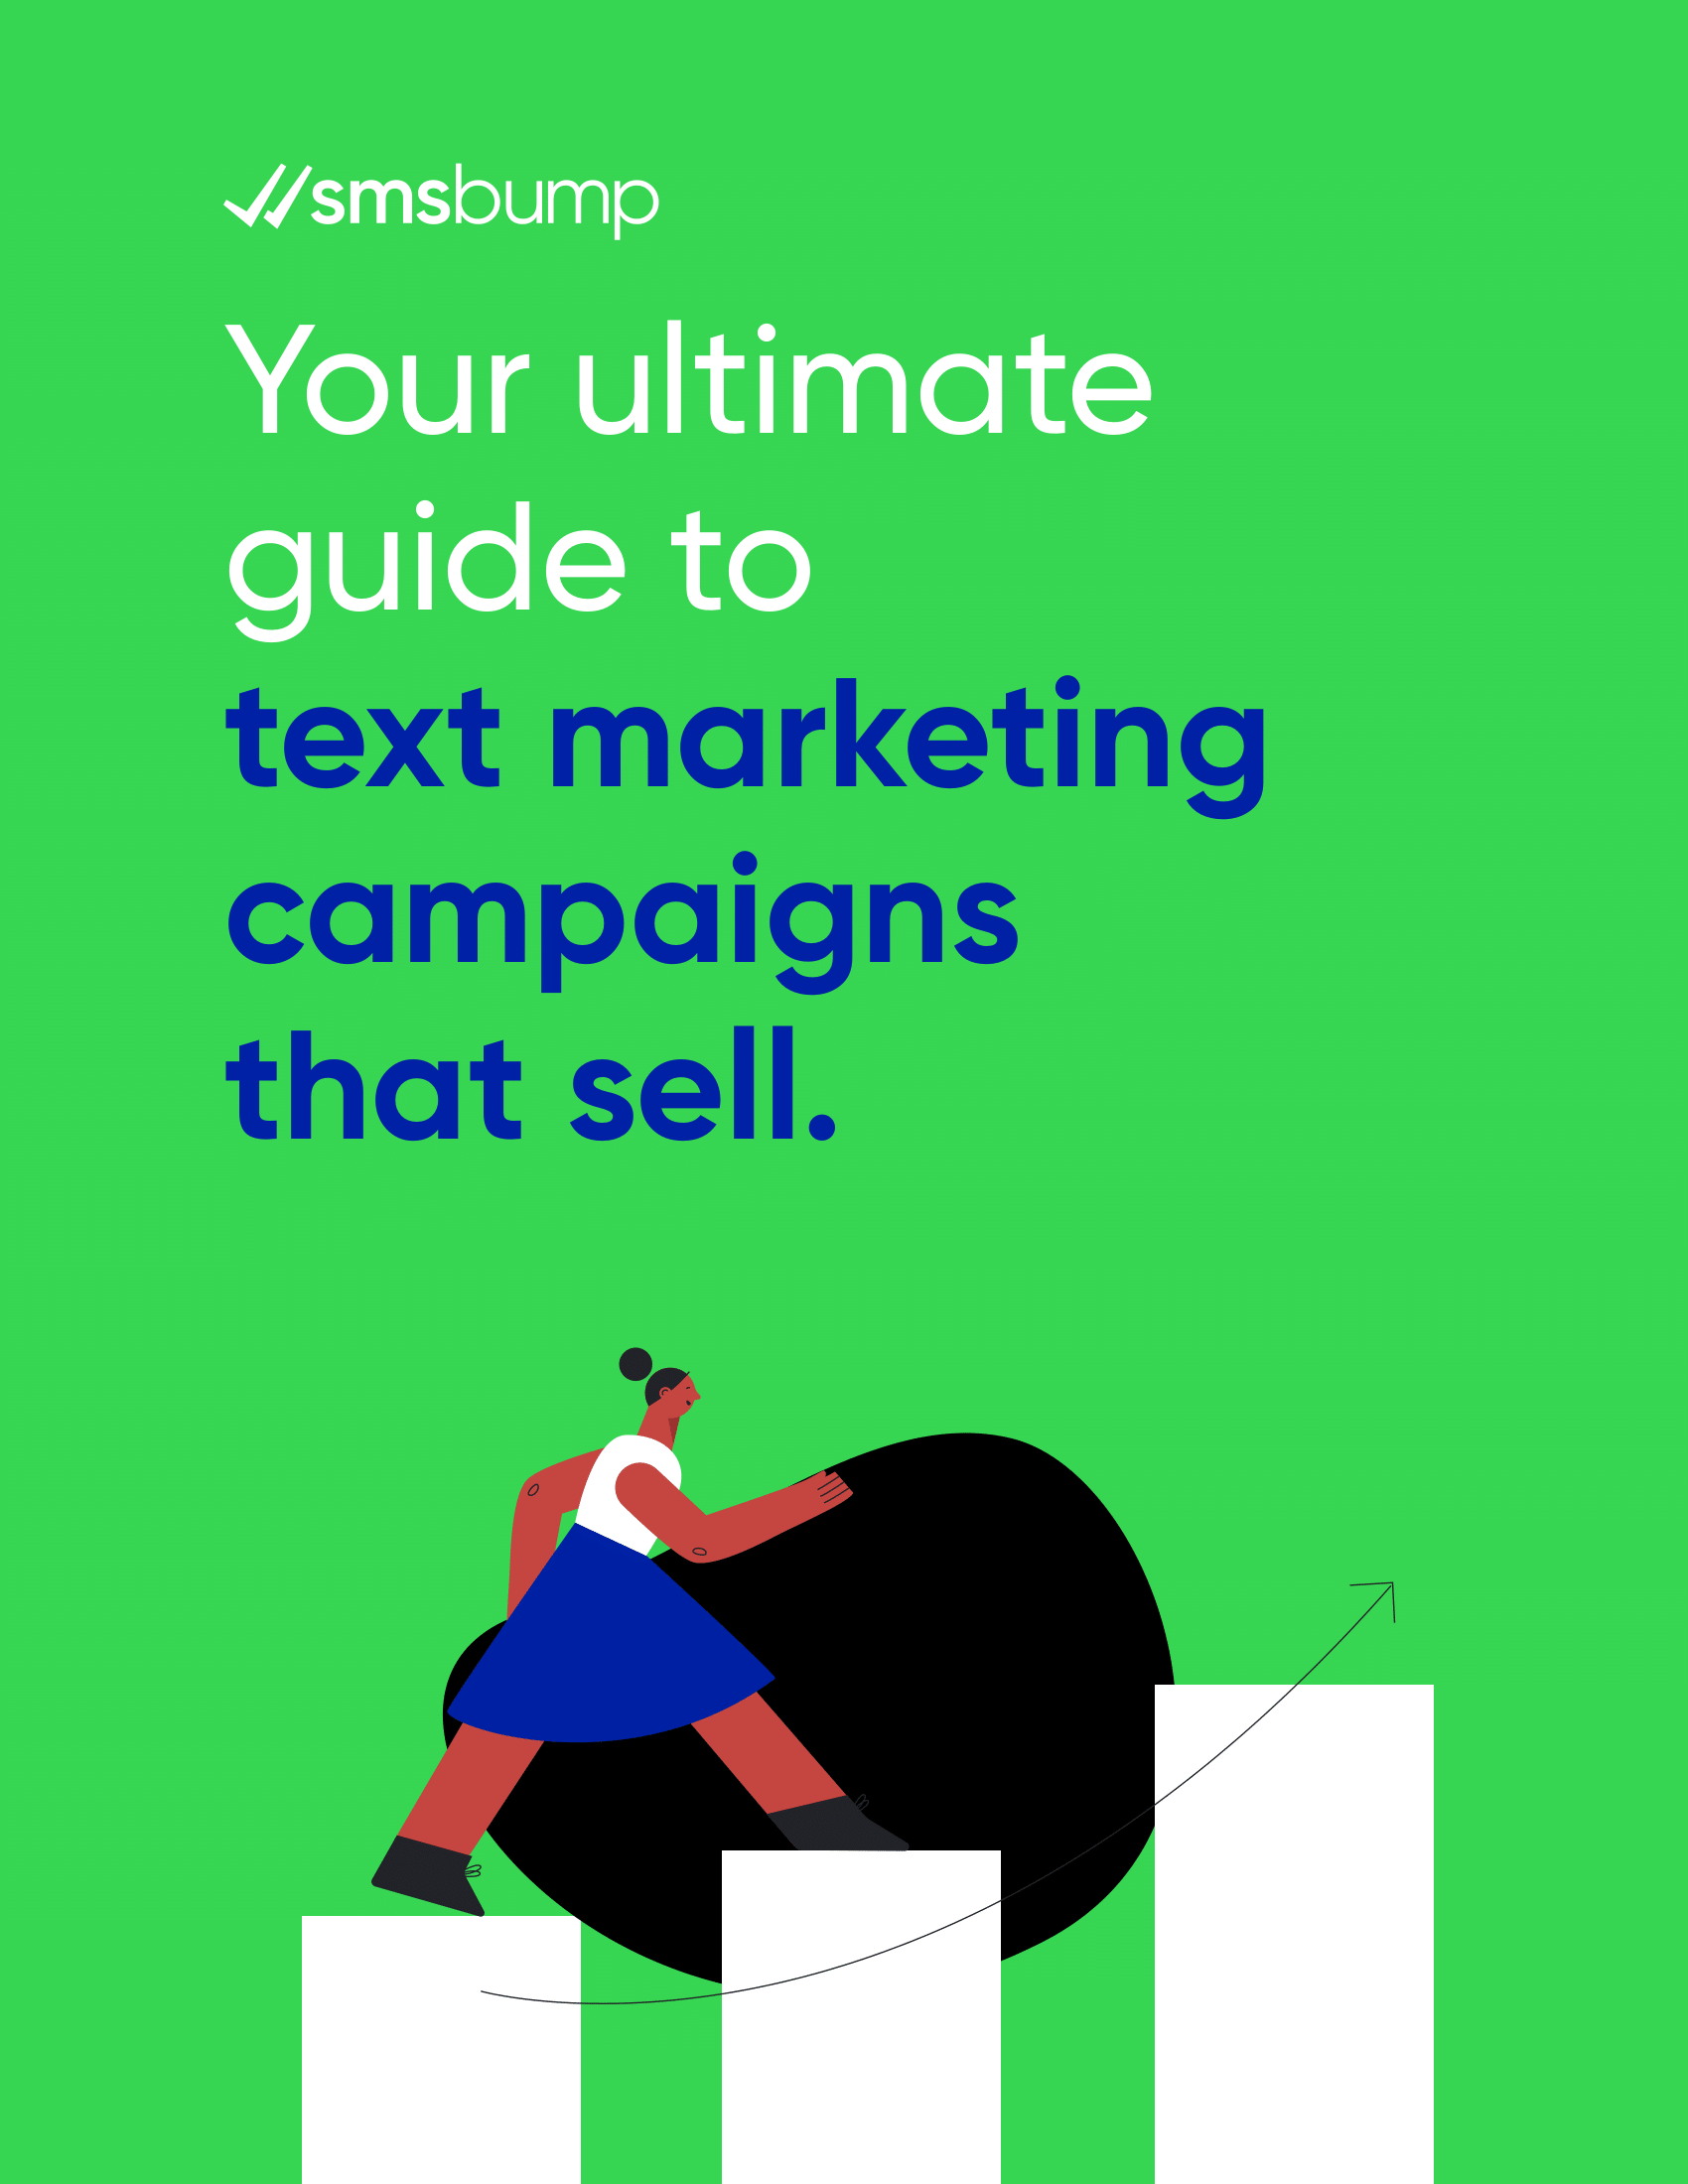 Your ultimate guide to text marketing campaigns that sell